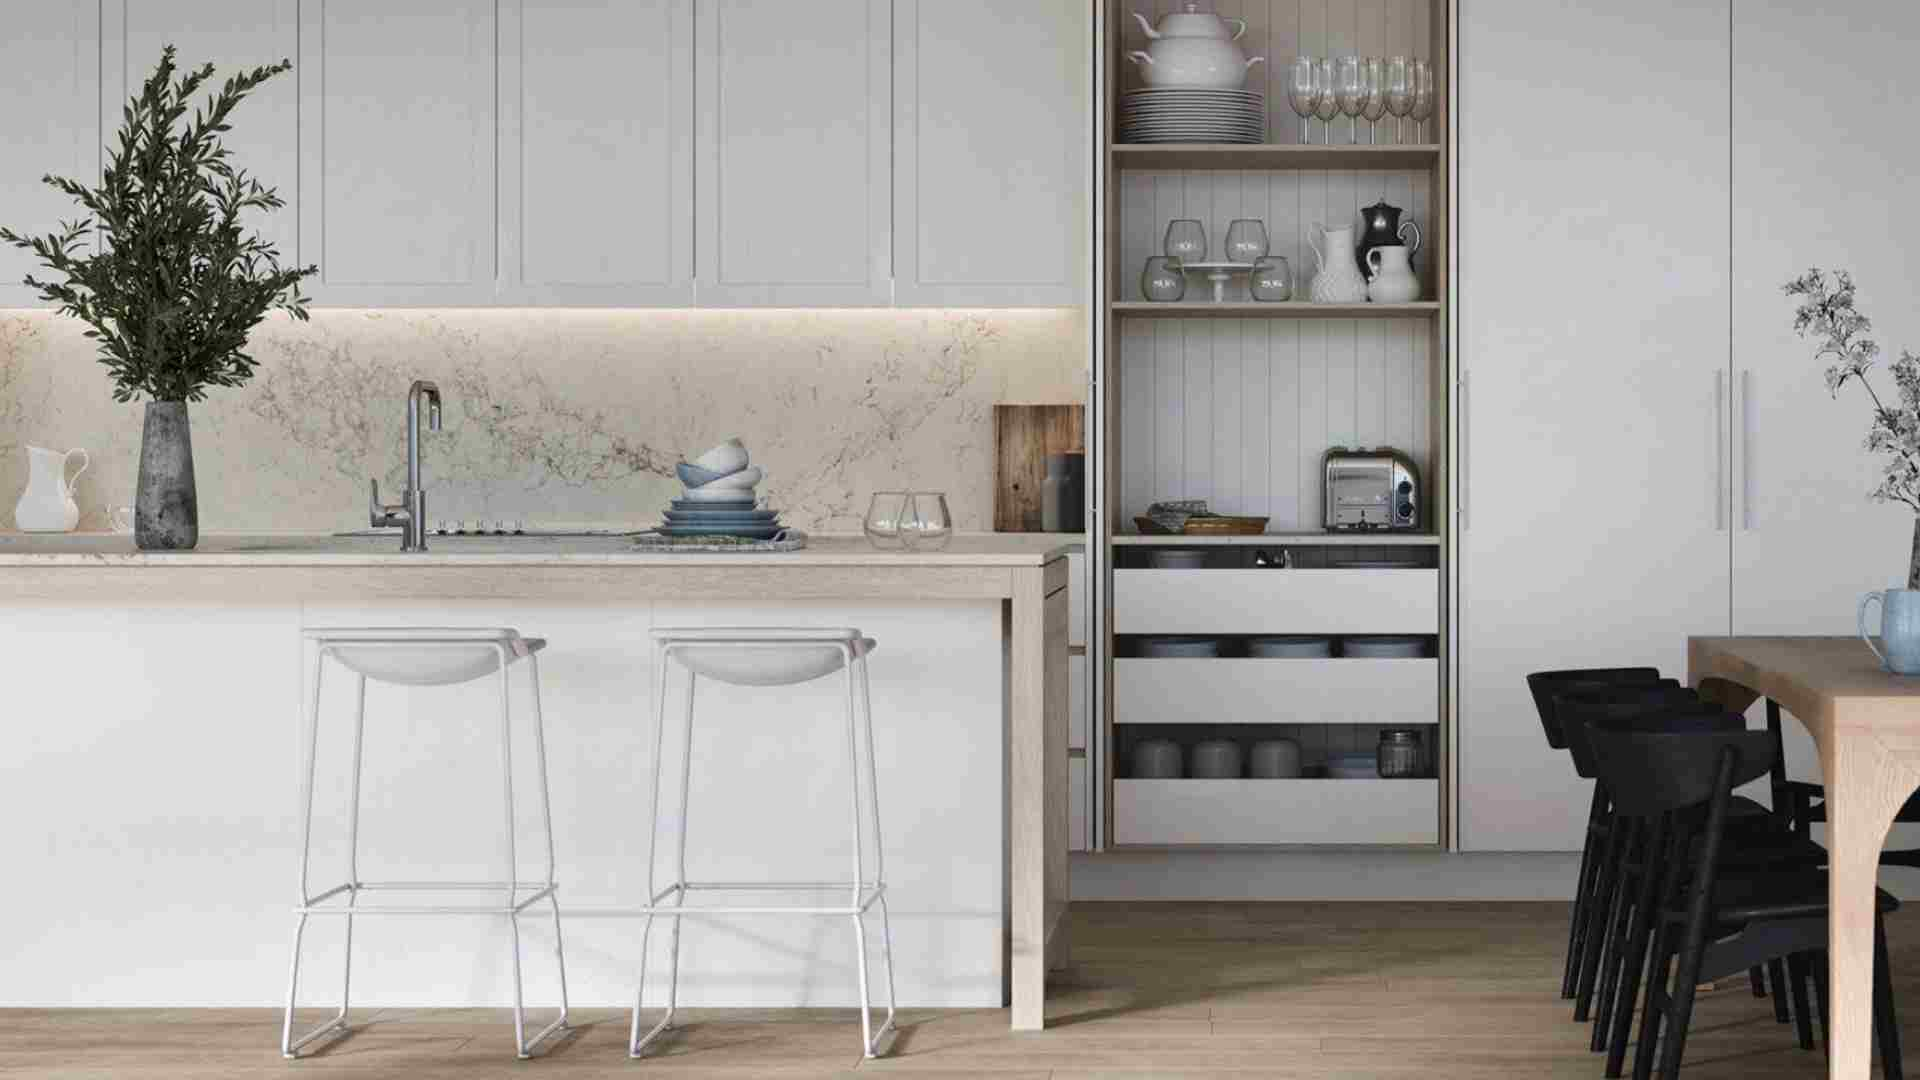 white kitchen cabinets, white marble countertop, wooden flooring